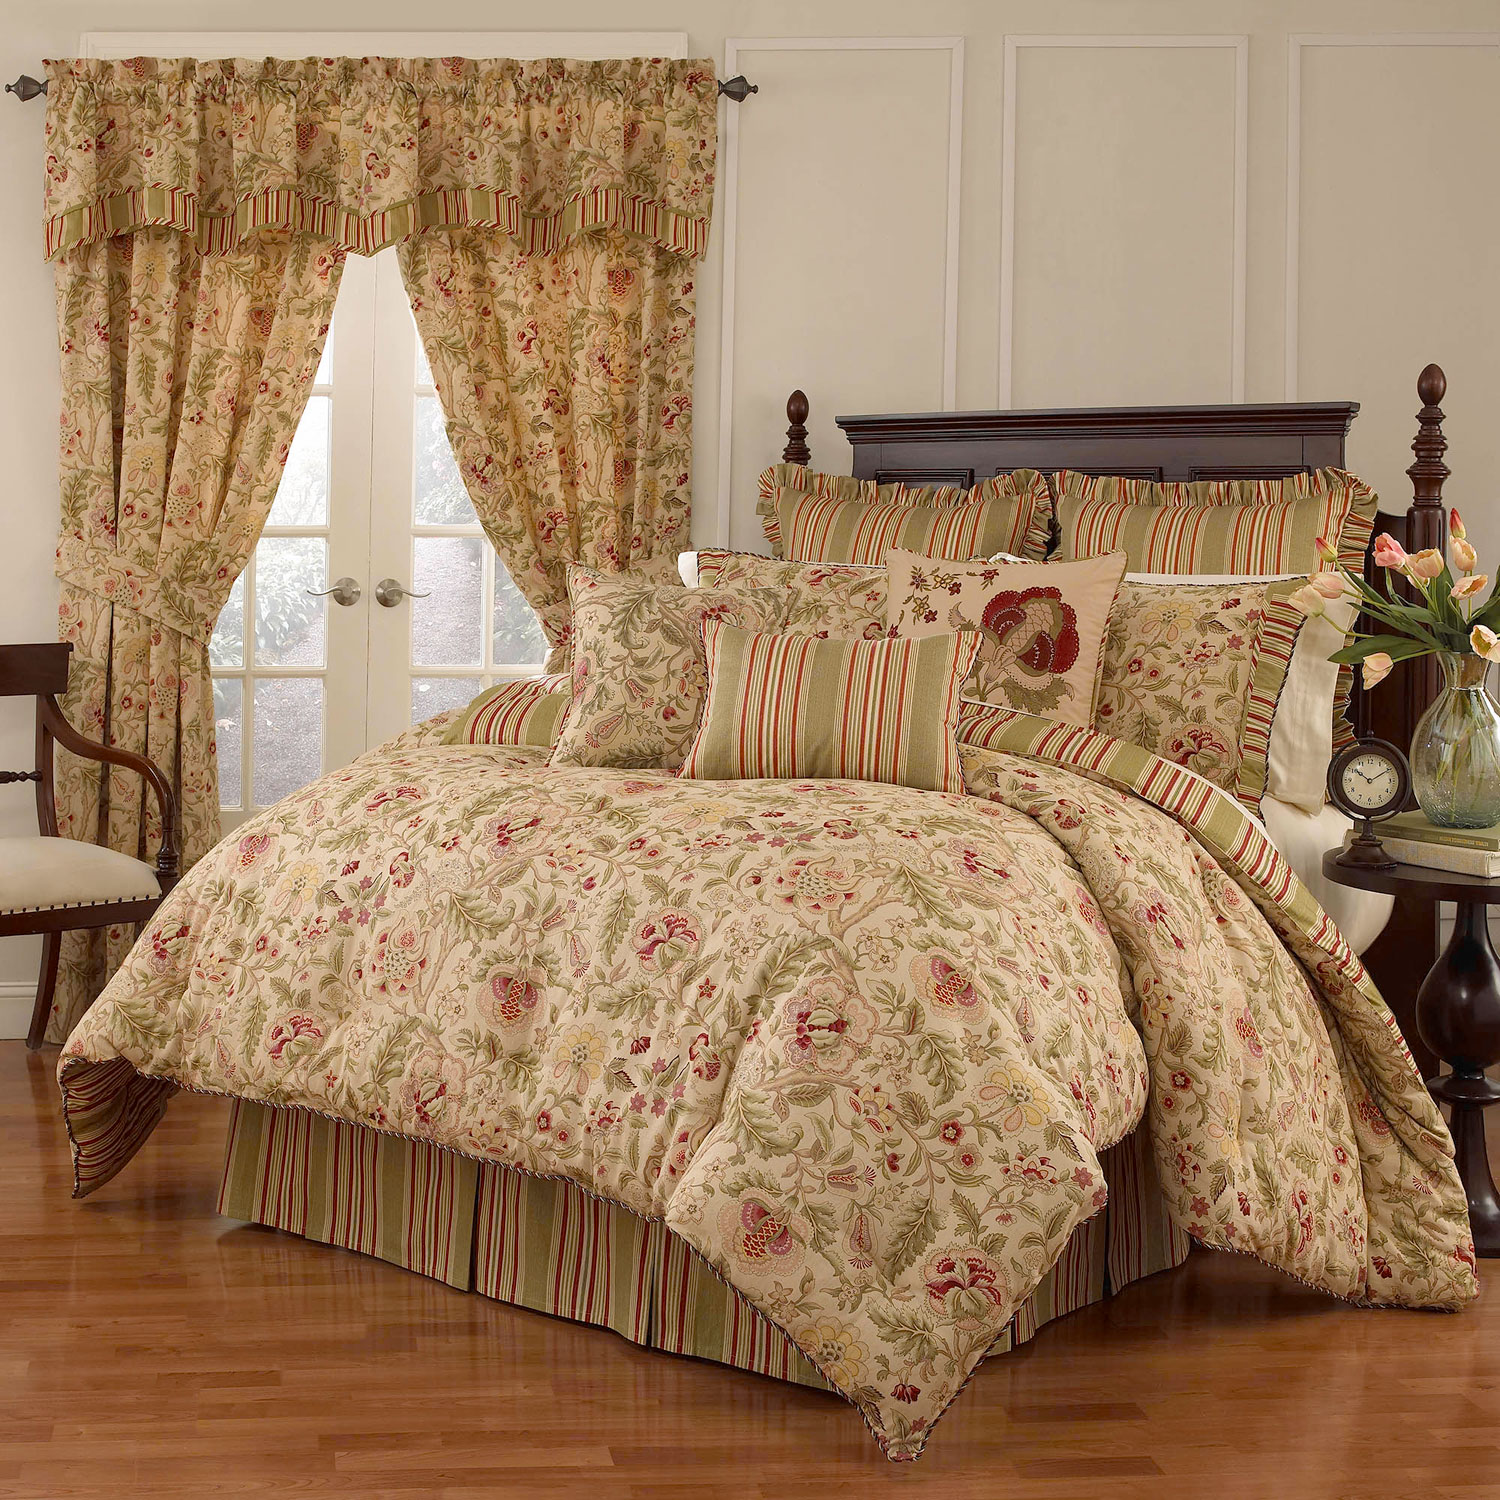 Great comforters sets for bedroom design with queen comforter sets